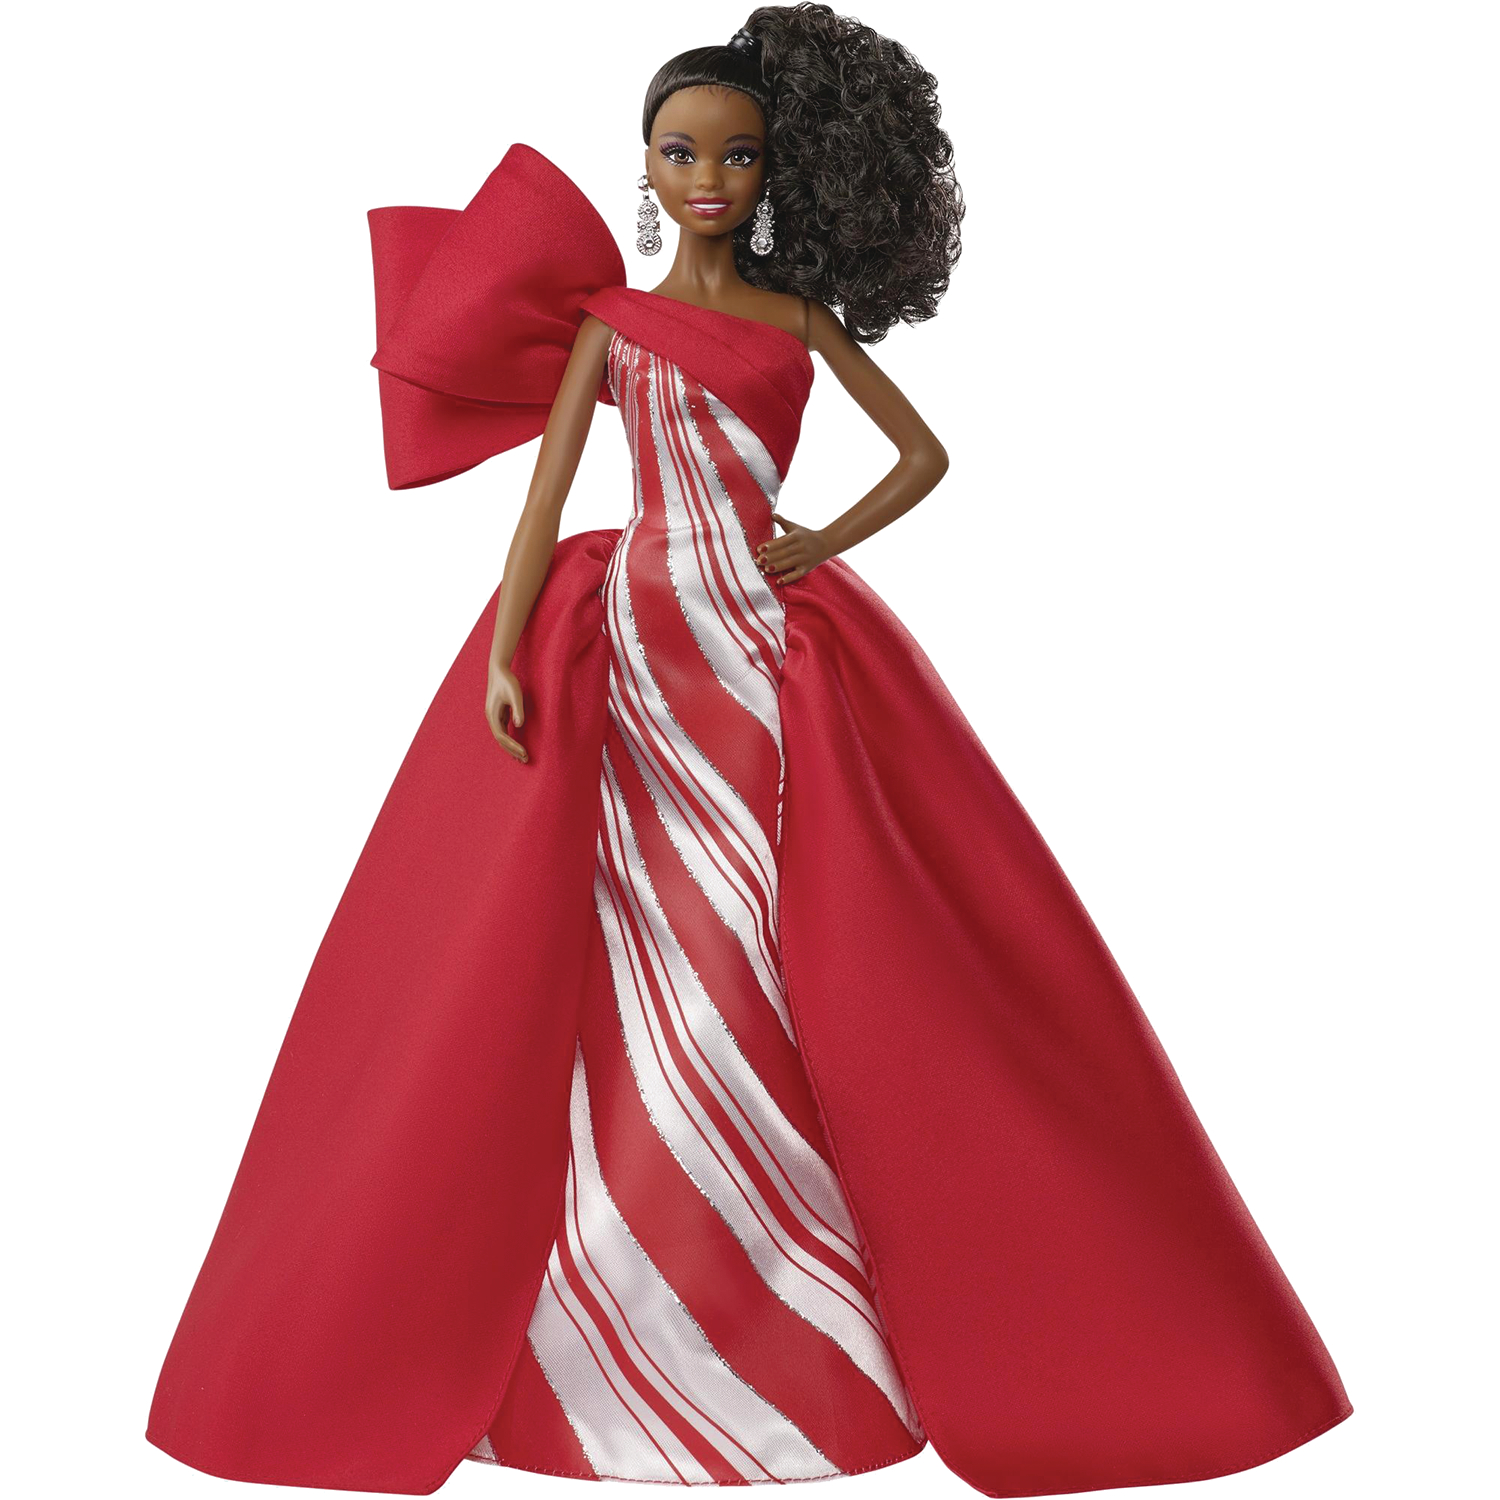 BARBIE 2019 HOLIDAY COLL DOLL AA VERSION CS